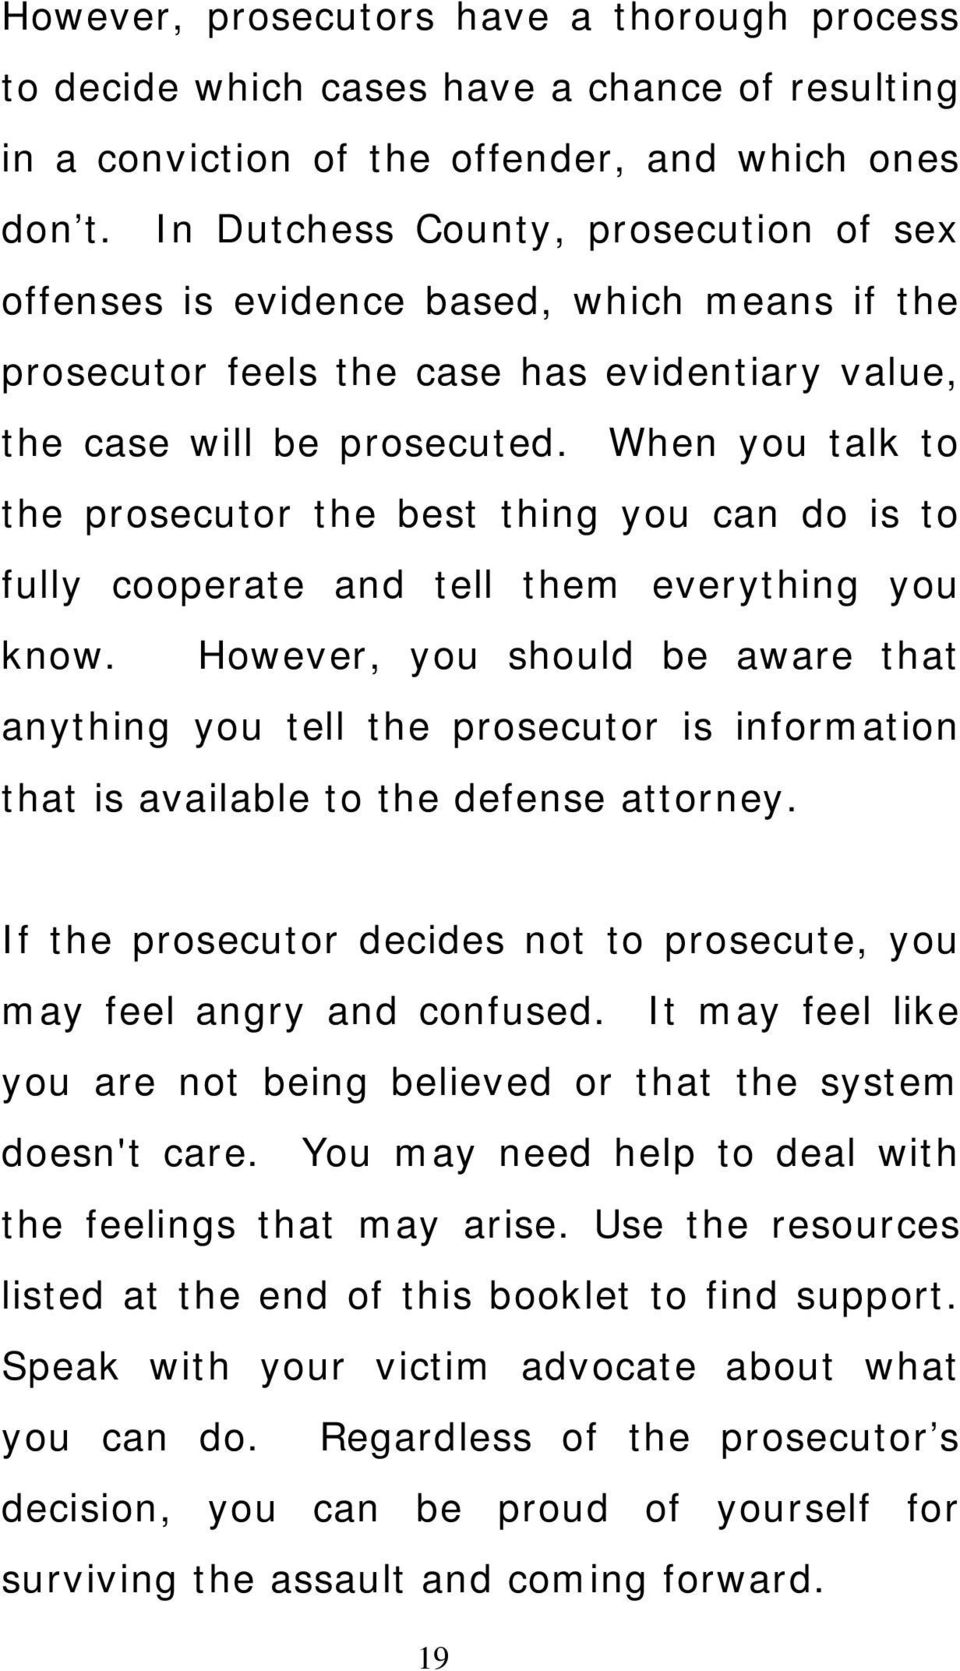 When you talk to the prosecutor the best thing you can do is to fully cooperate and tell them everything you know.